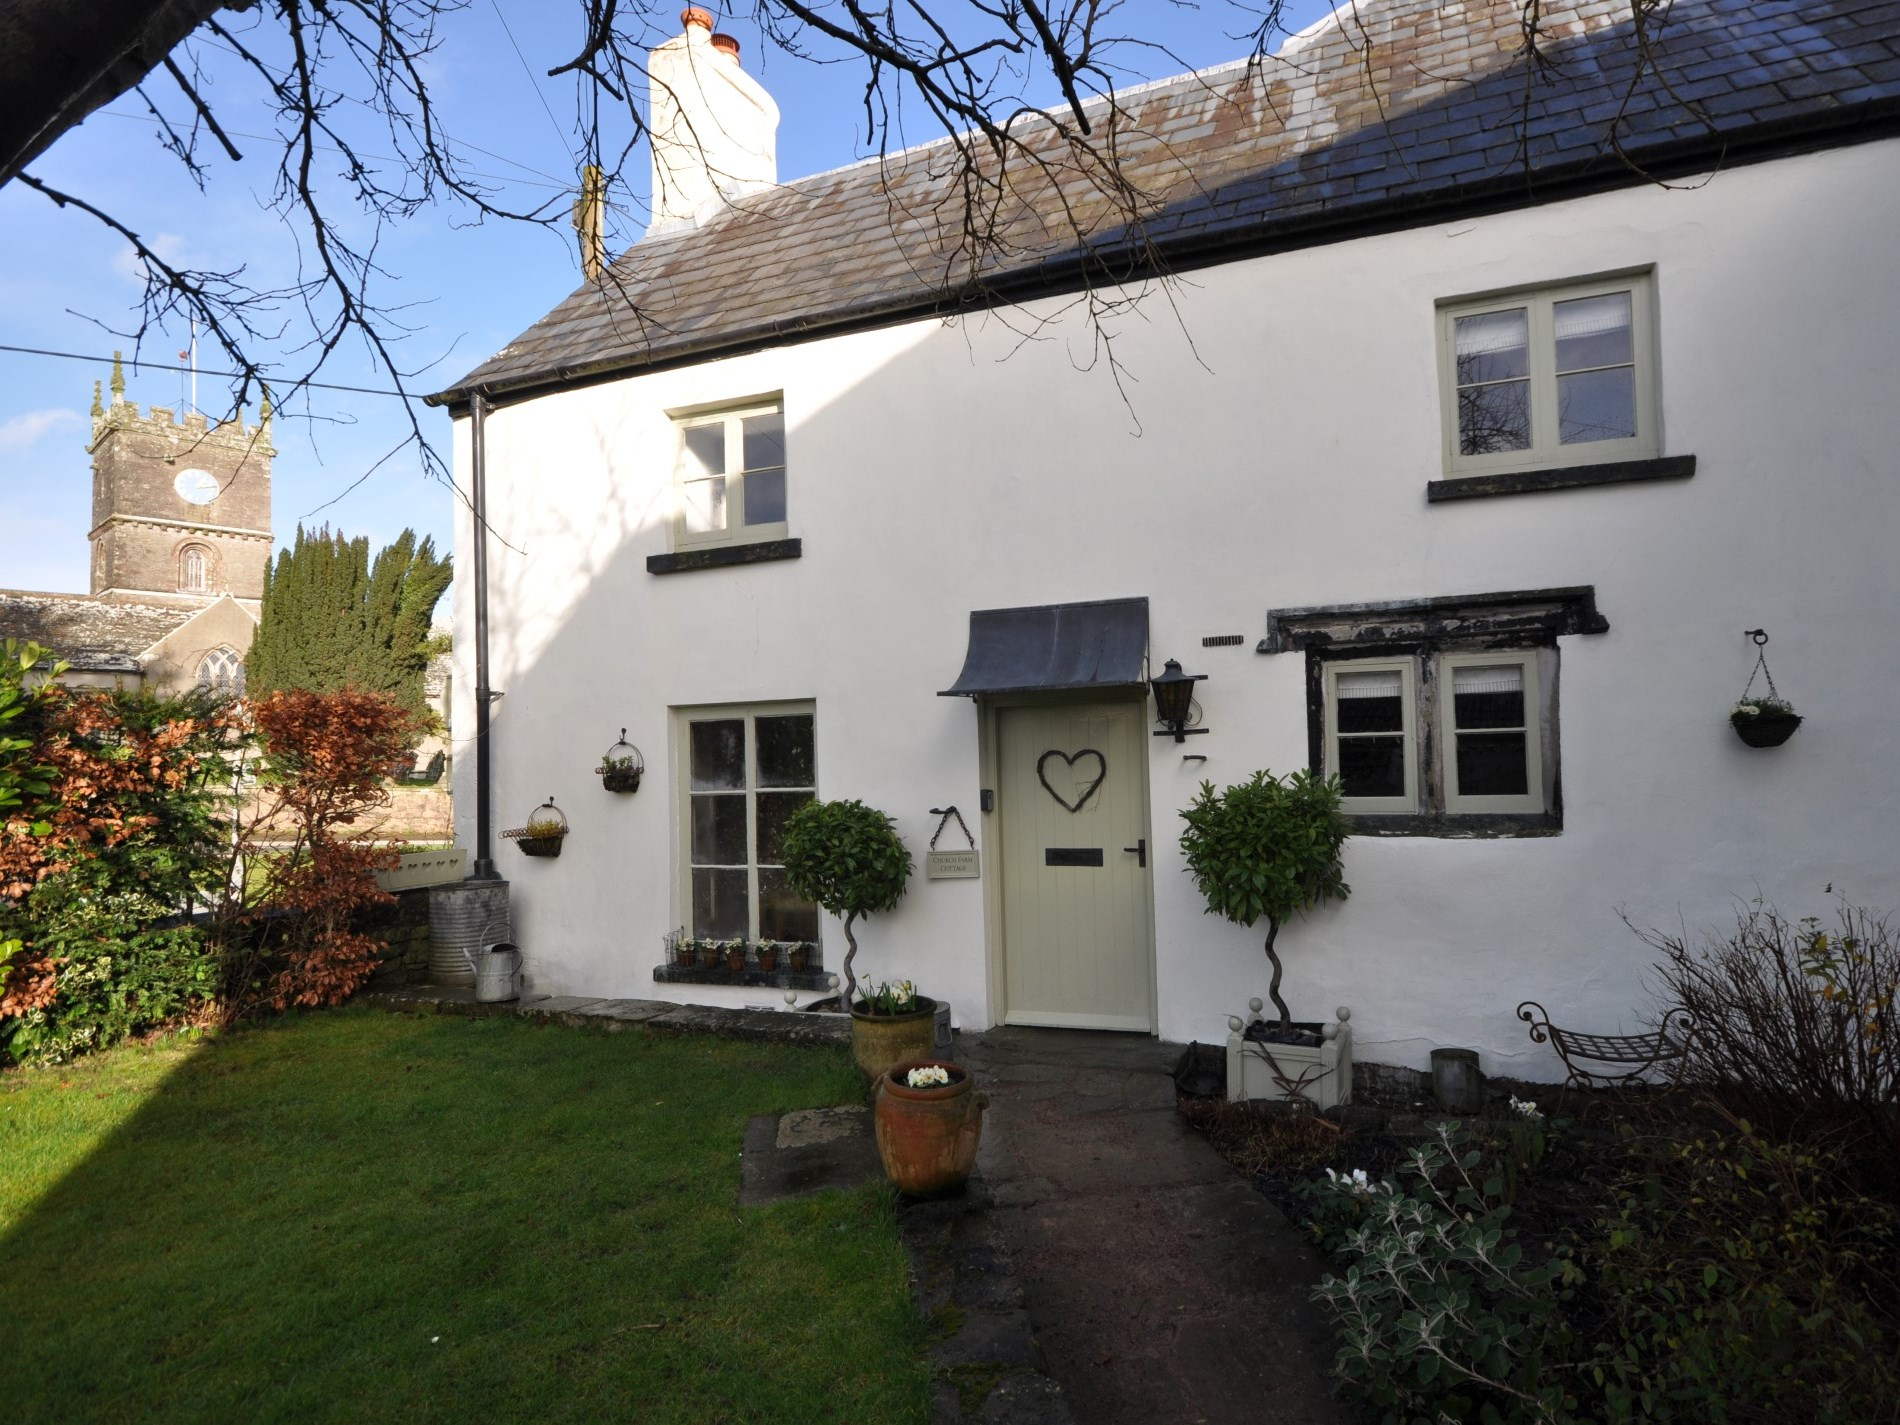 Grade II listed cottage with church views